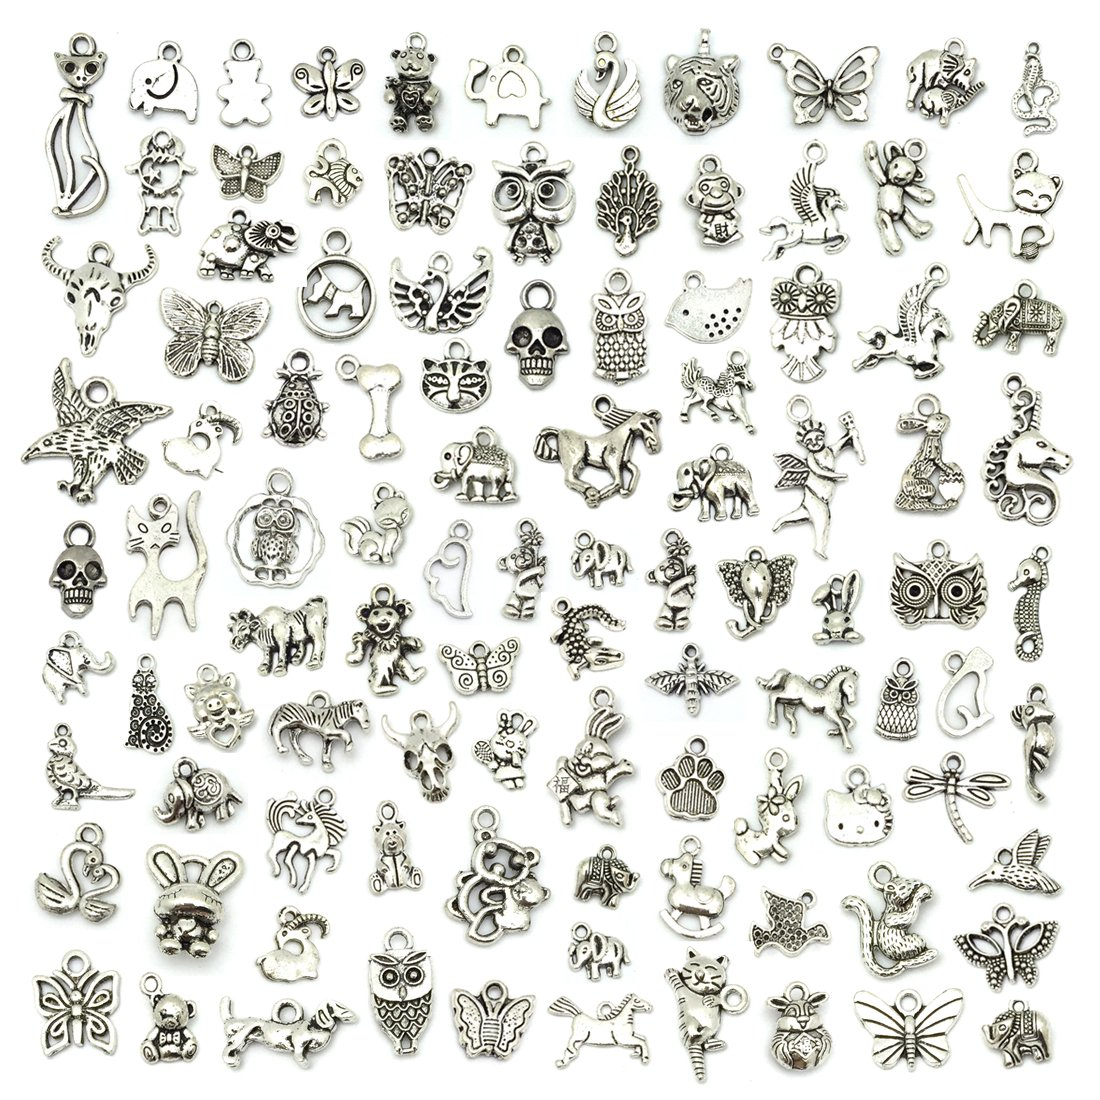 JIALEEY Wholesale 100 PCS Mixed No Repeated Silver Pewter Smooth Metal Charms Pendants DIY for Necklace Bracelet Dangle Jewelry Making and Crafting, Animal Charms LEEFUNAD 4336819510